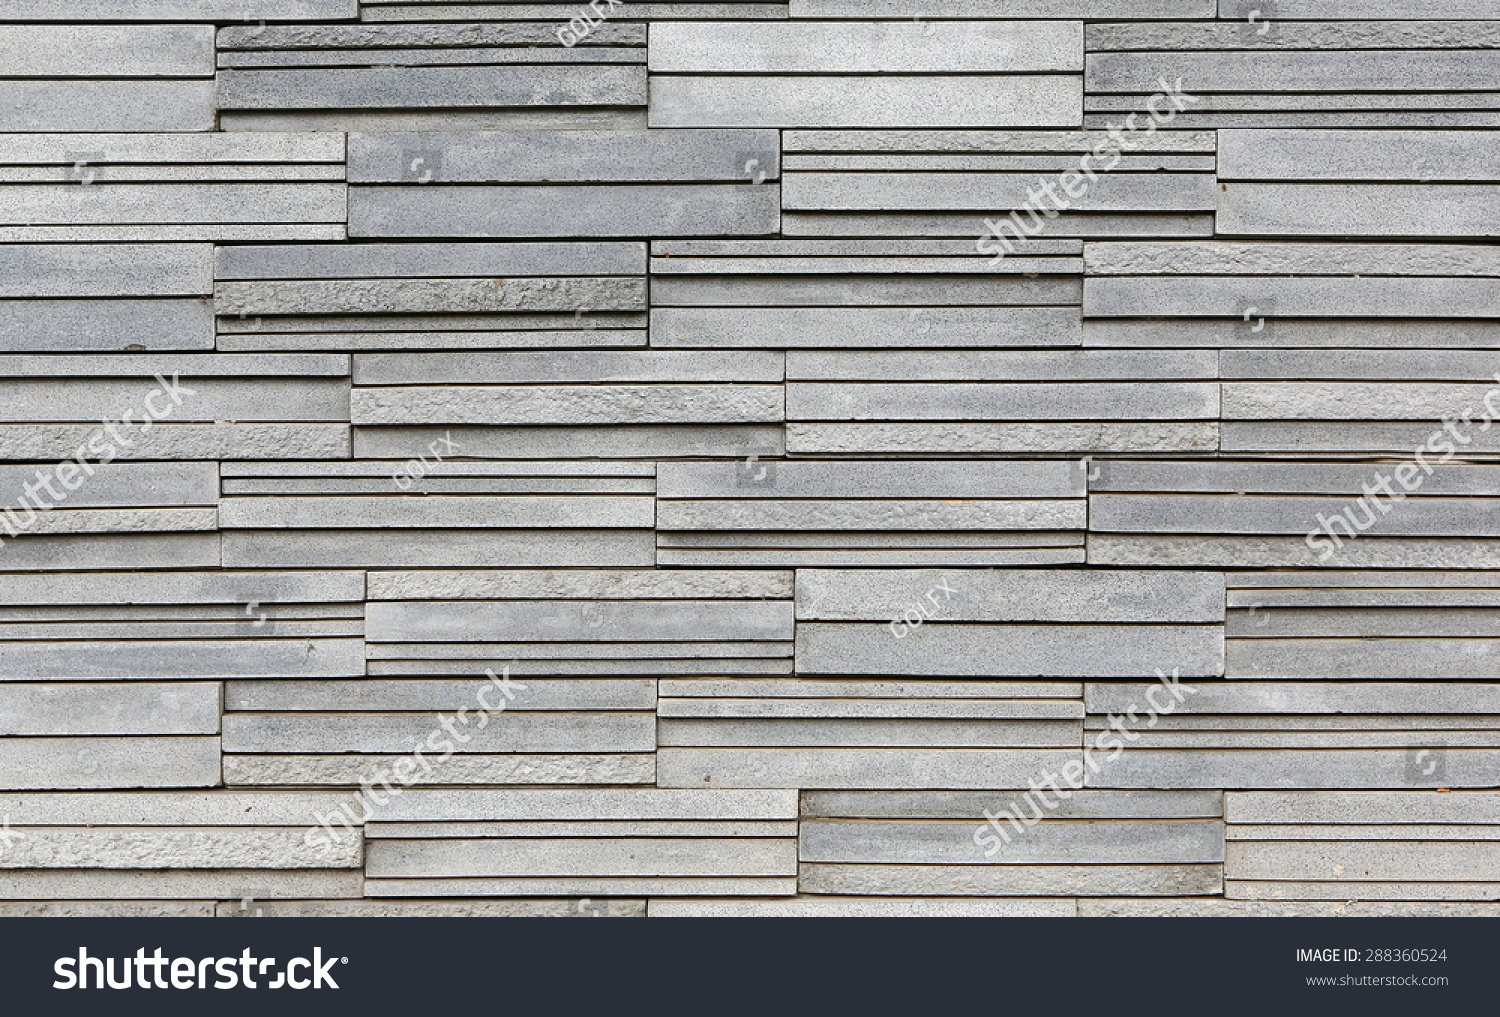 Grey Stone Tile Texture Brick Wall Stock Photo 288360524